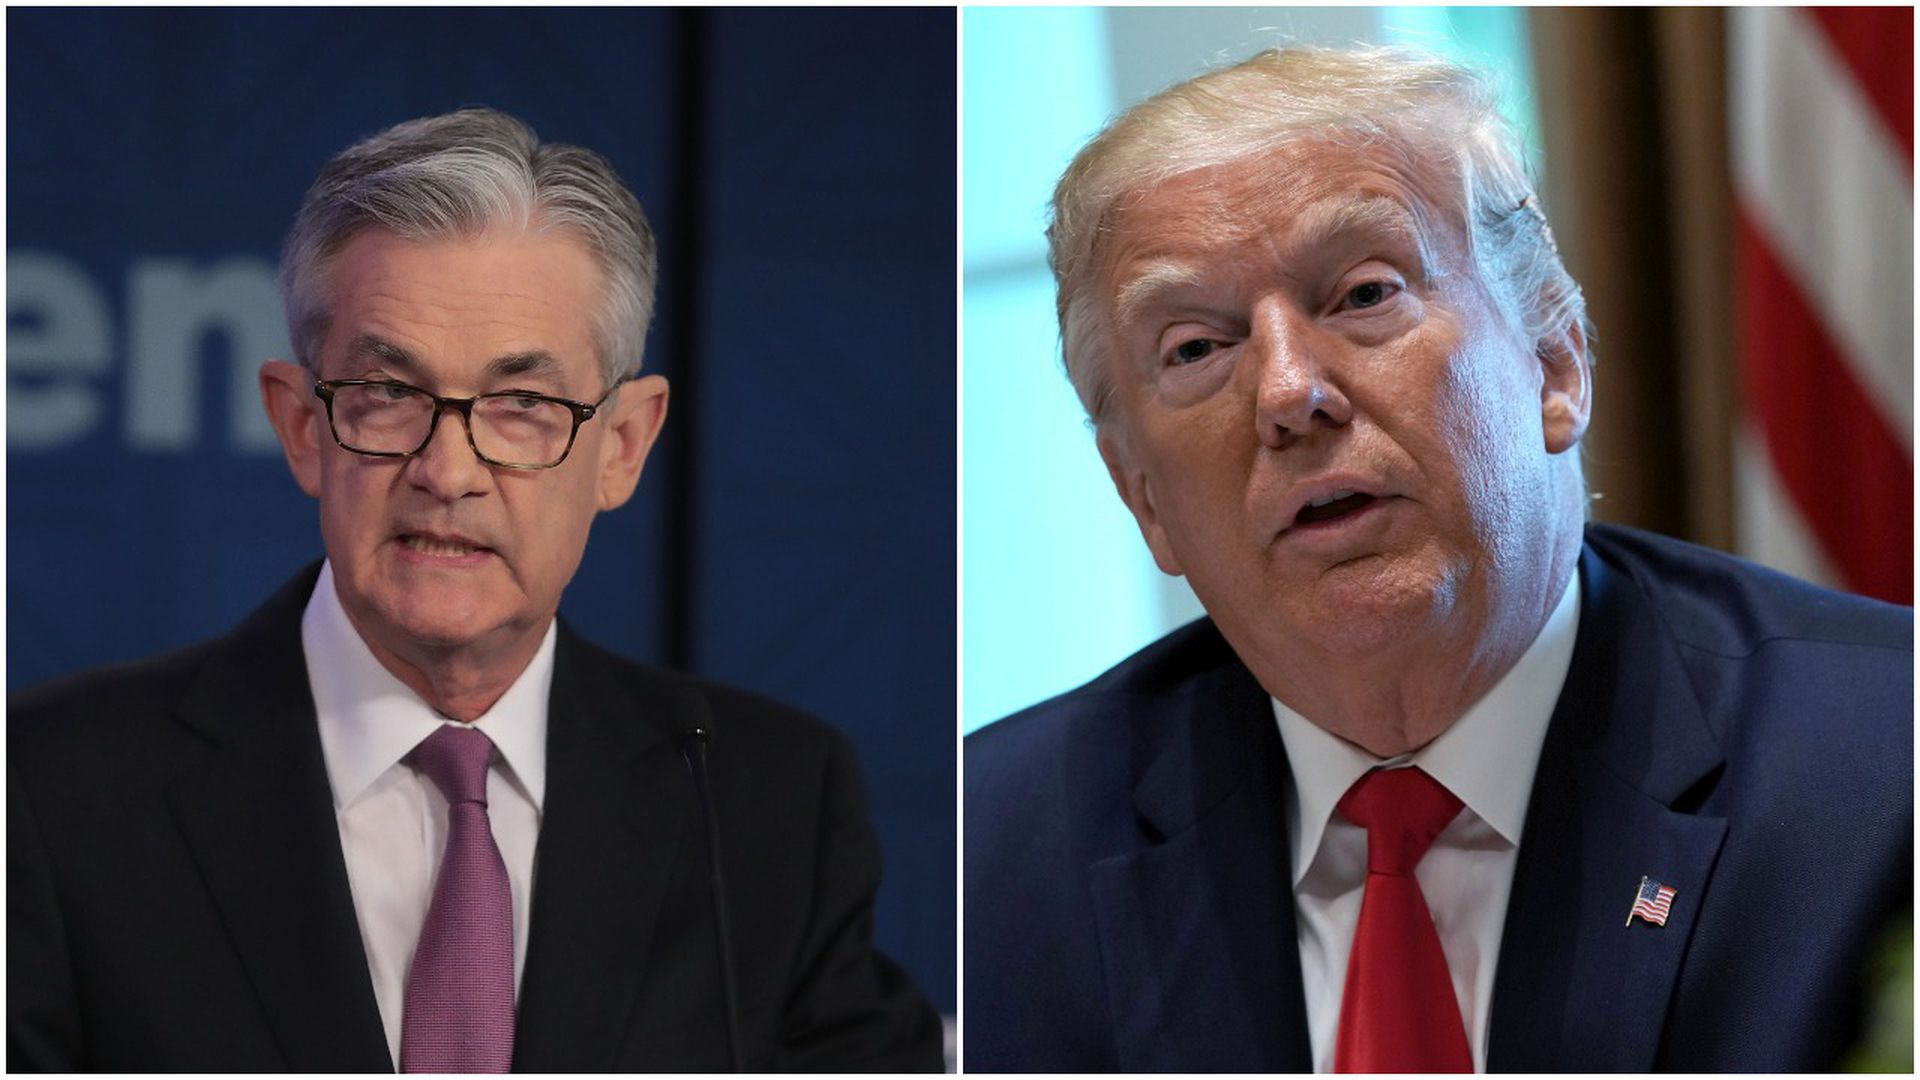 This image is a two-way splitscreen between Powell and Trump.